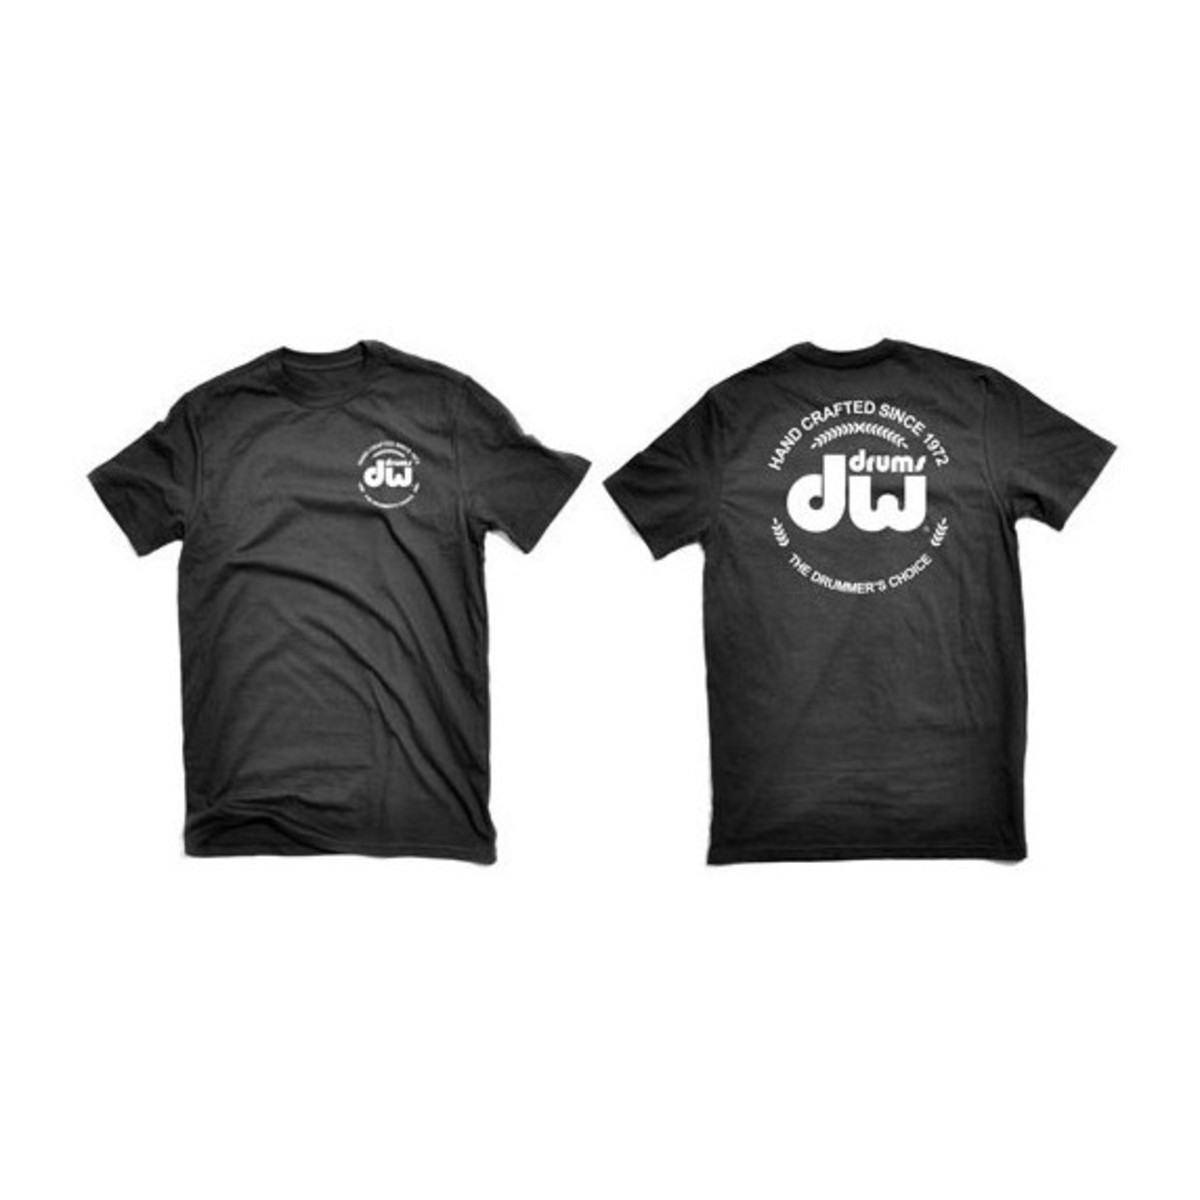 dw drums black tshirt with white dw logo small at gear4music